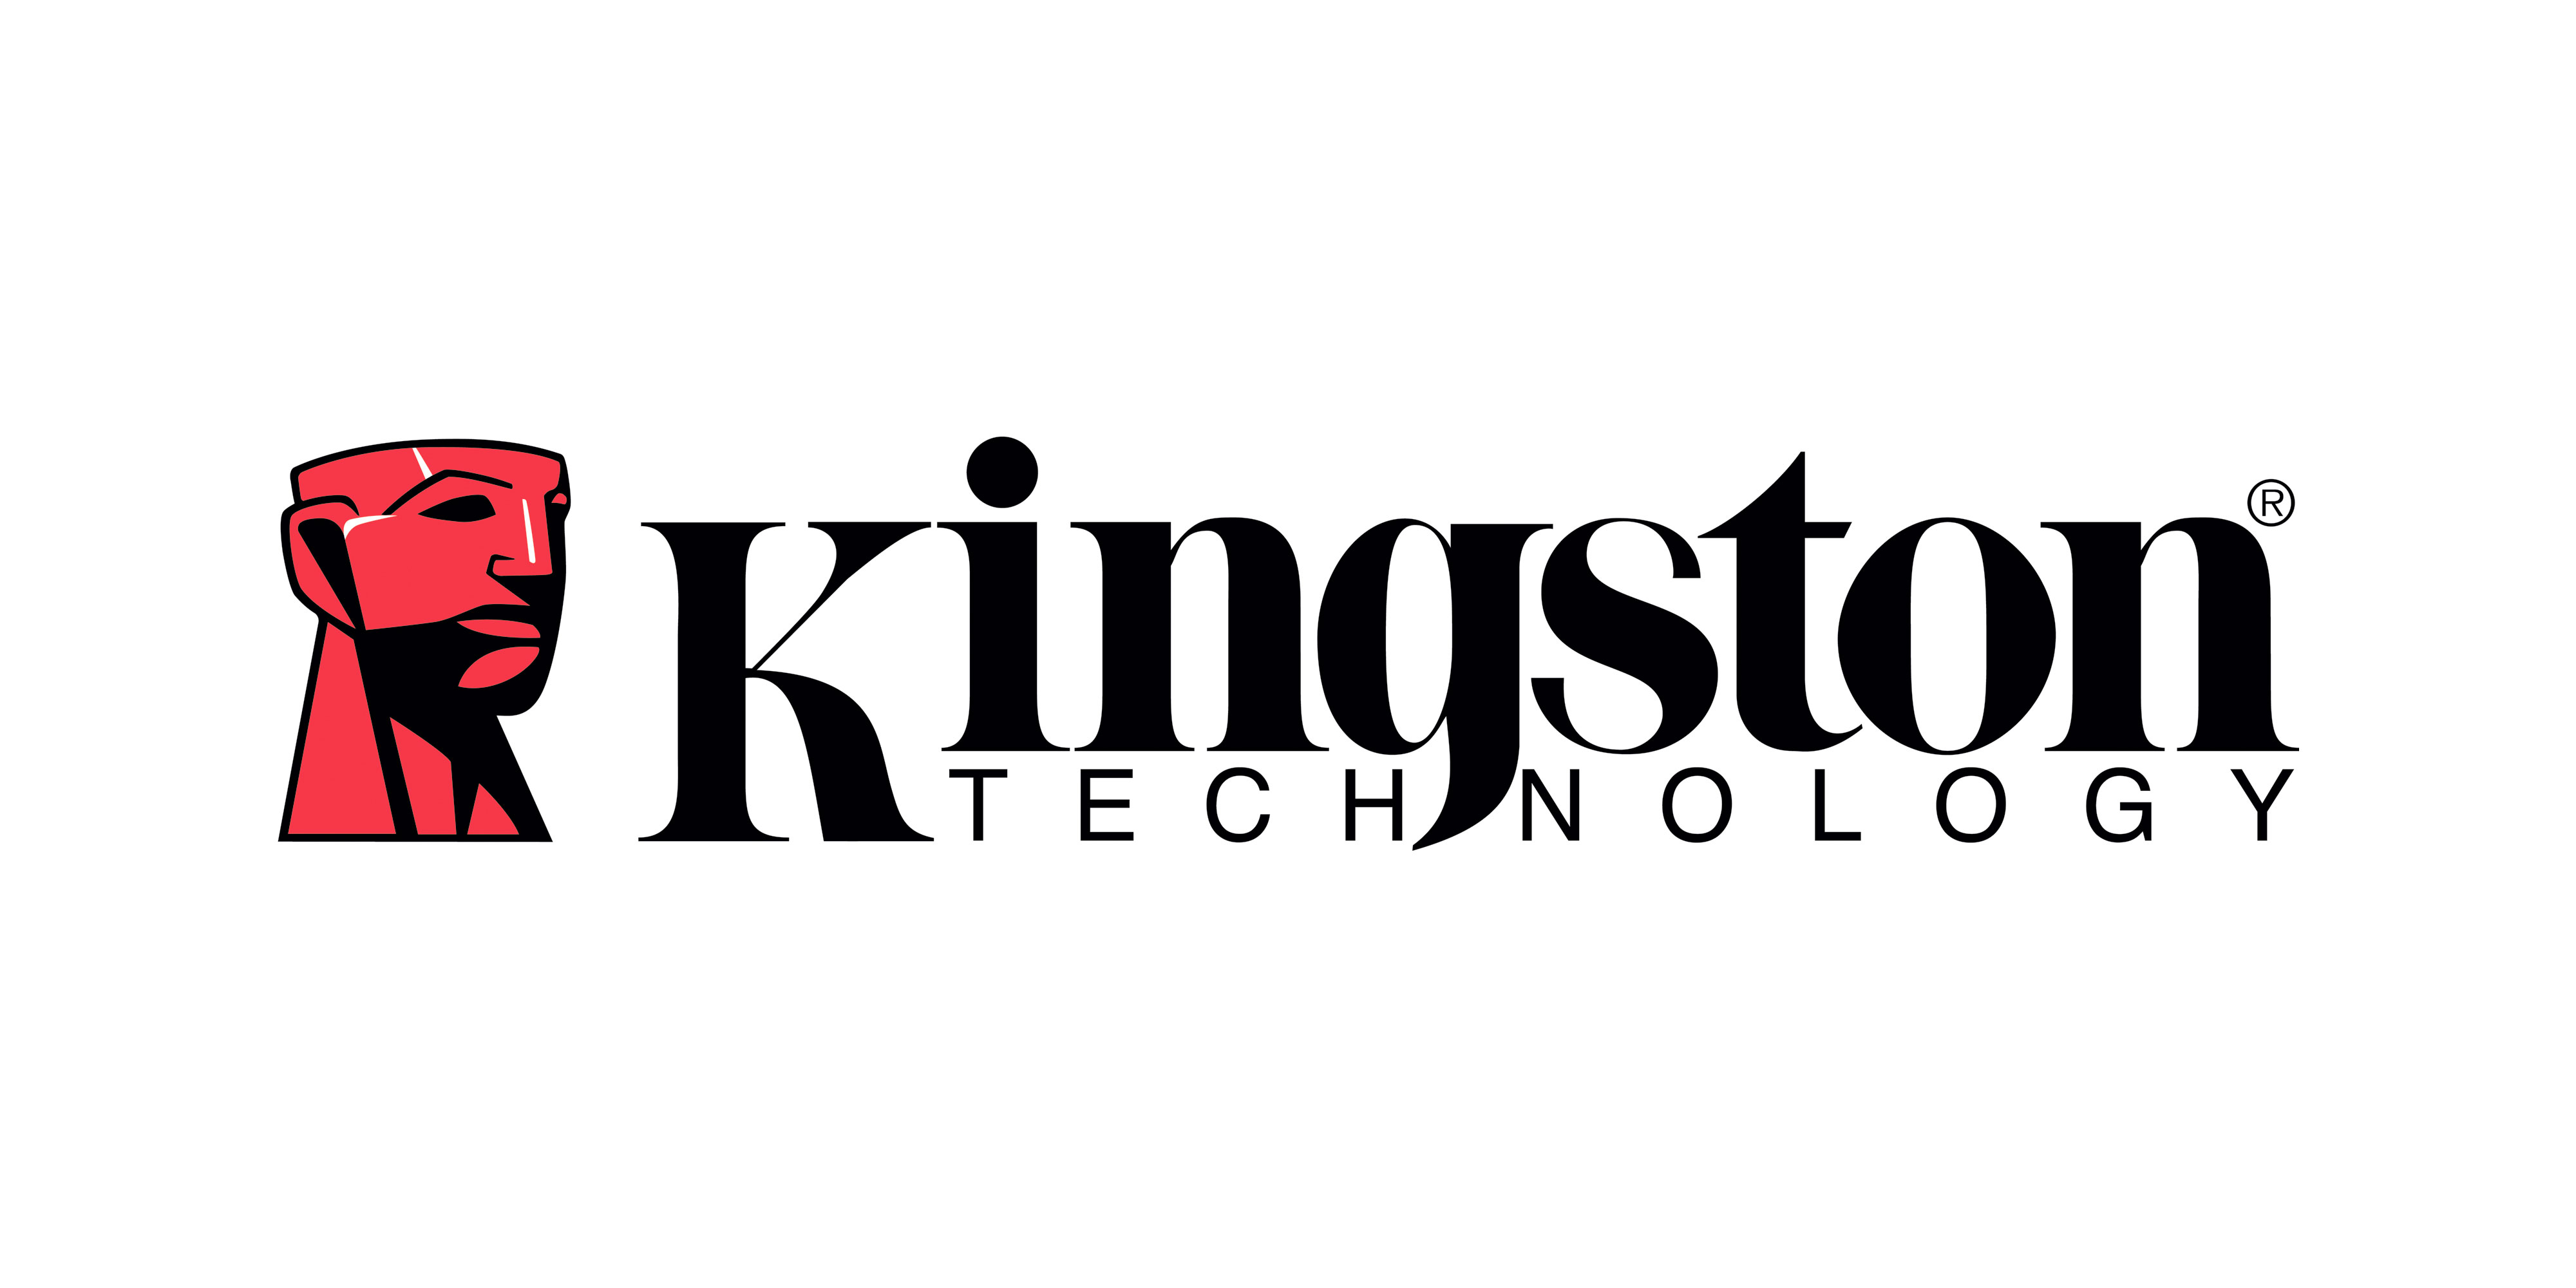 Kingstontechnology